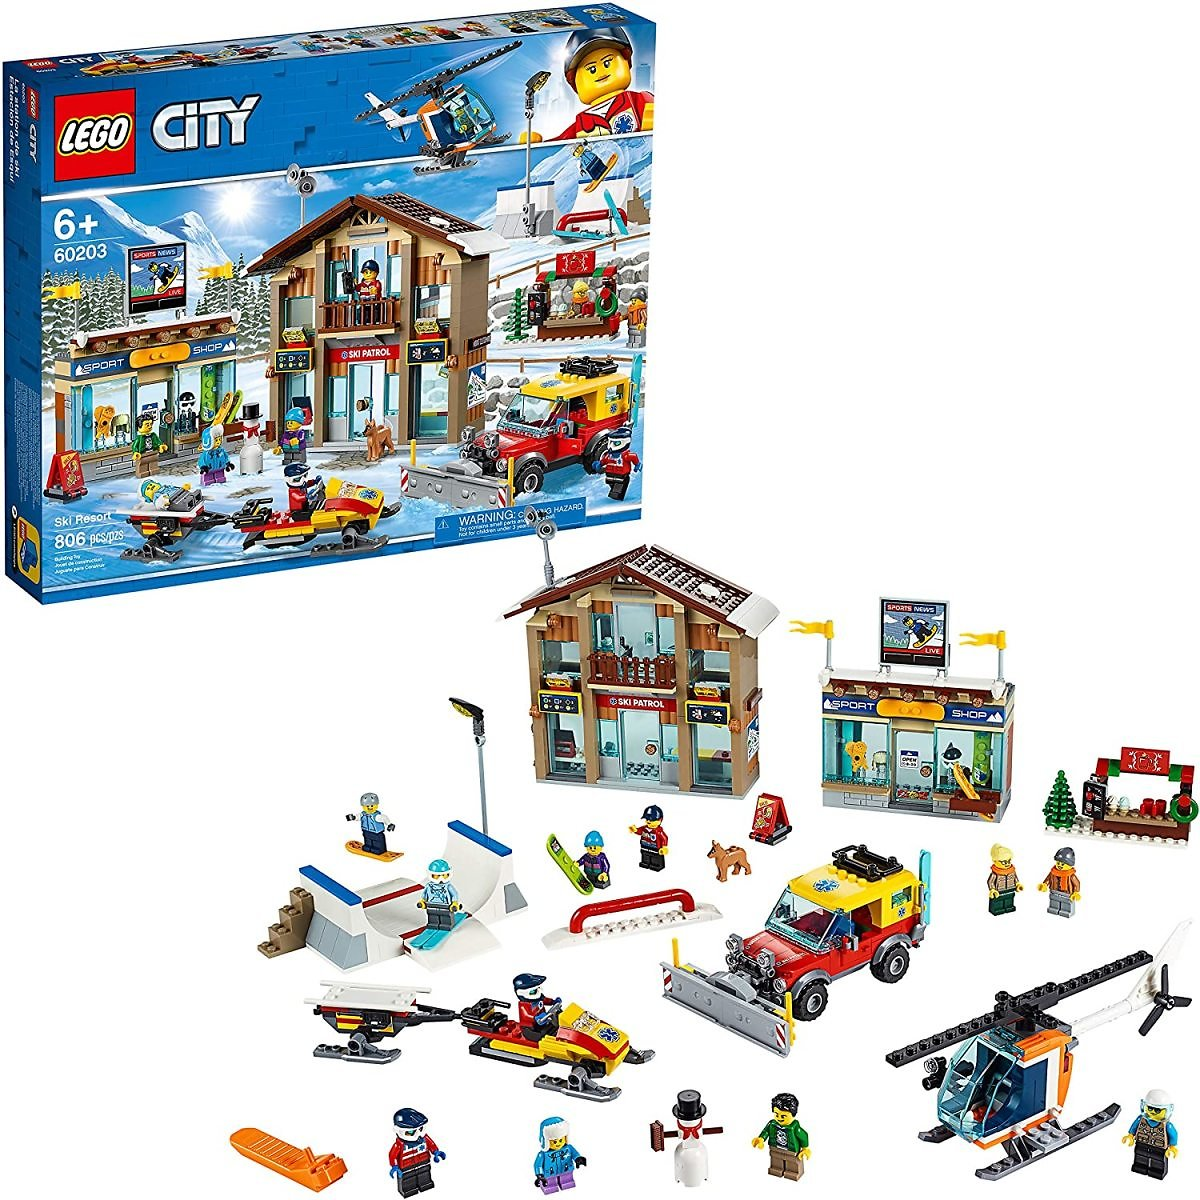 LEGO City Ski Resort 60203 Building Kit Snow Toy for Kids (806 Pieces)